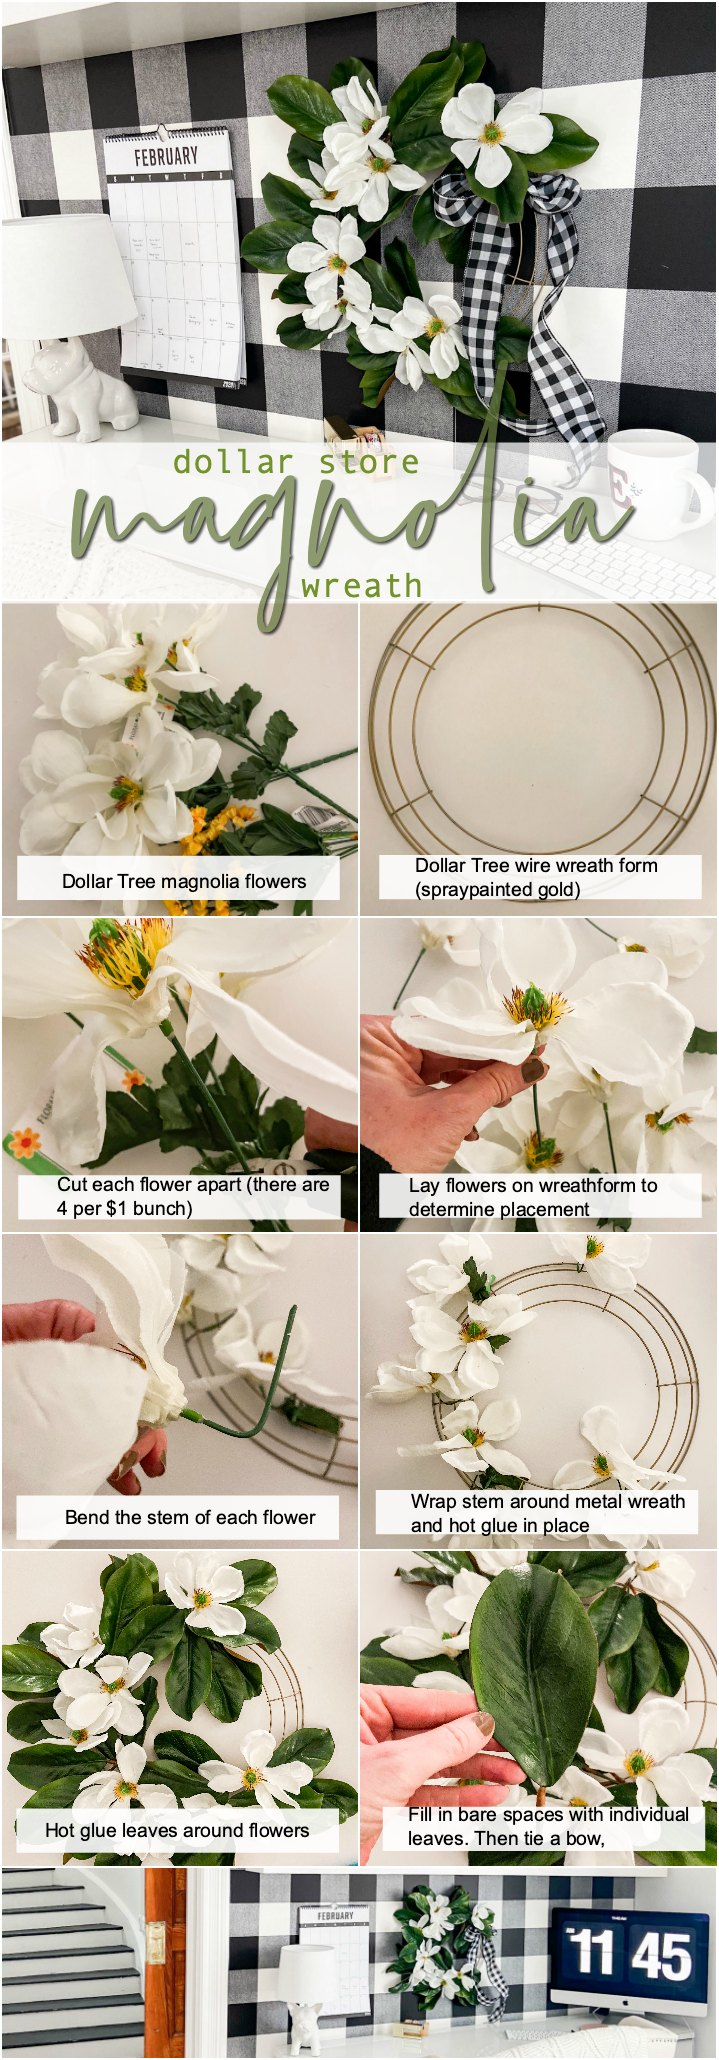 Dollar Store Magnolia Farmhouse Wreath. Make a gorgeous farmhouse-style wreath for a few dollars with items from the dollar store!